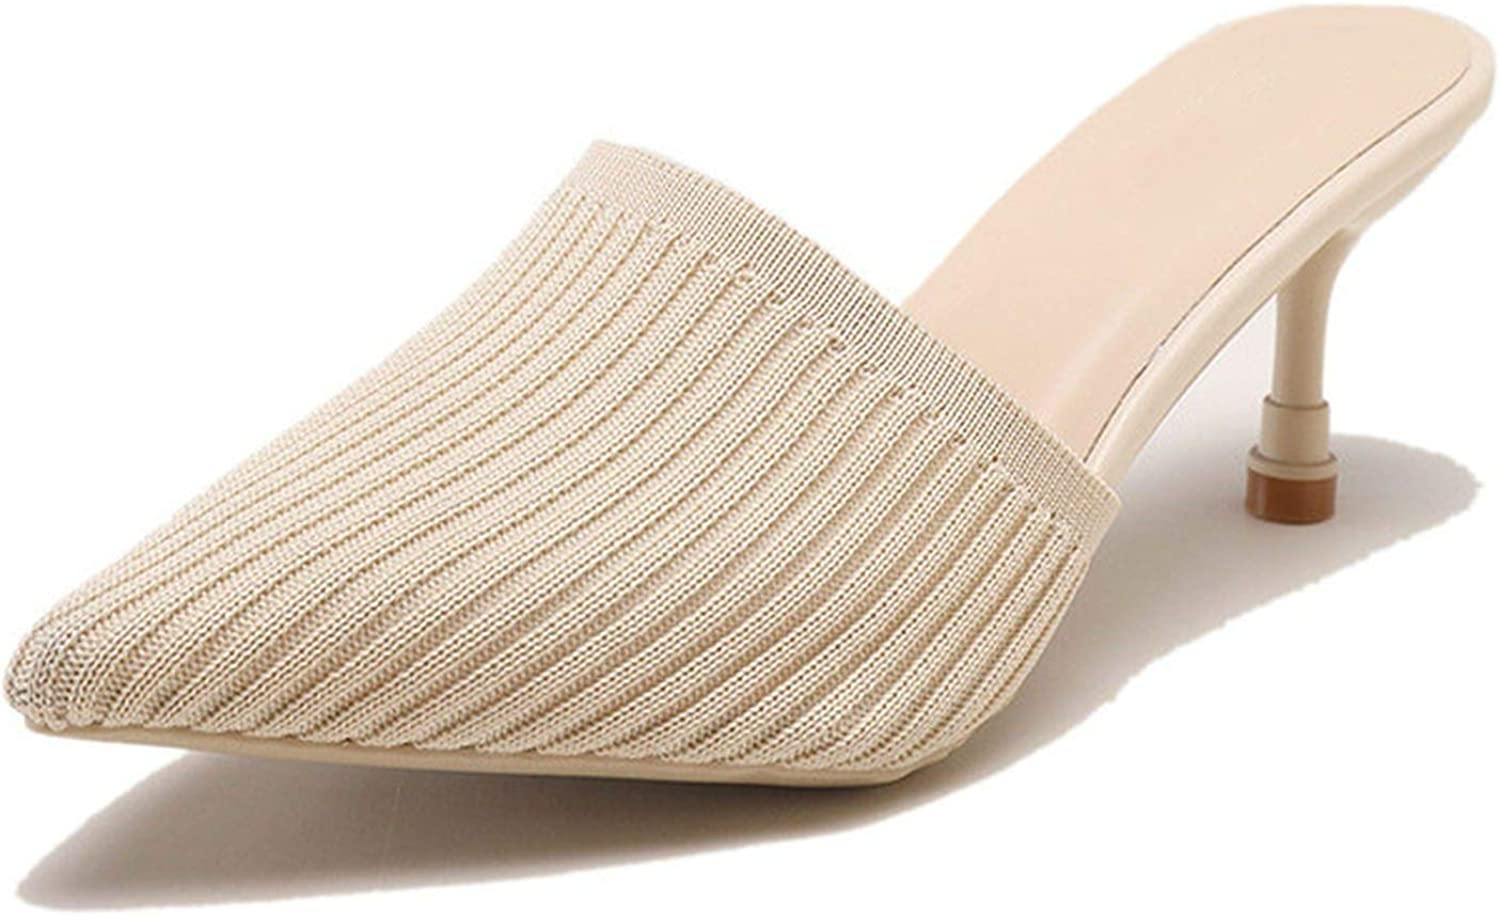 Monicas-Dream New Knitting Pointed Toe Fashion Women Female Slides High-Heeled Mules Loafers Casual Slipper